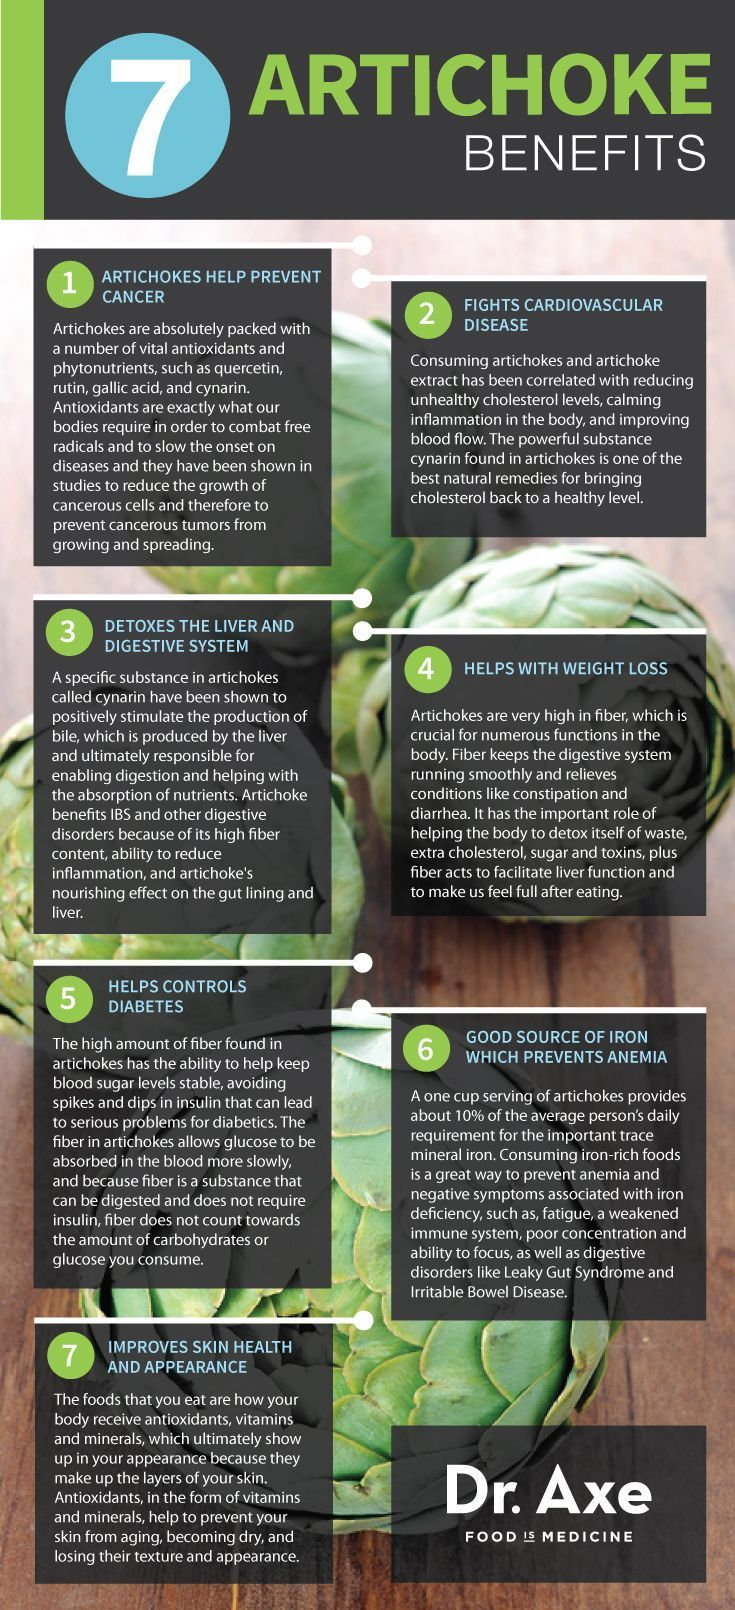 Artichokes benefits recipes nutrition facts health benefits artichokes benefits recipes nutrition facts dr axe forumfinder Gallery